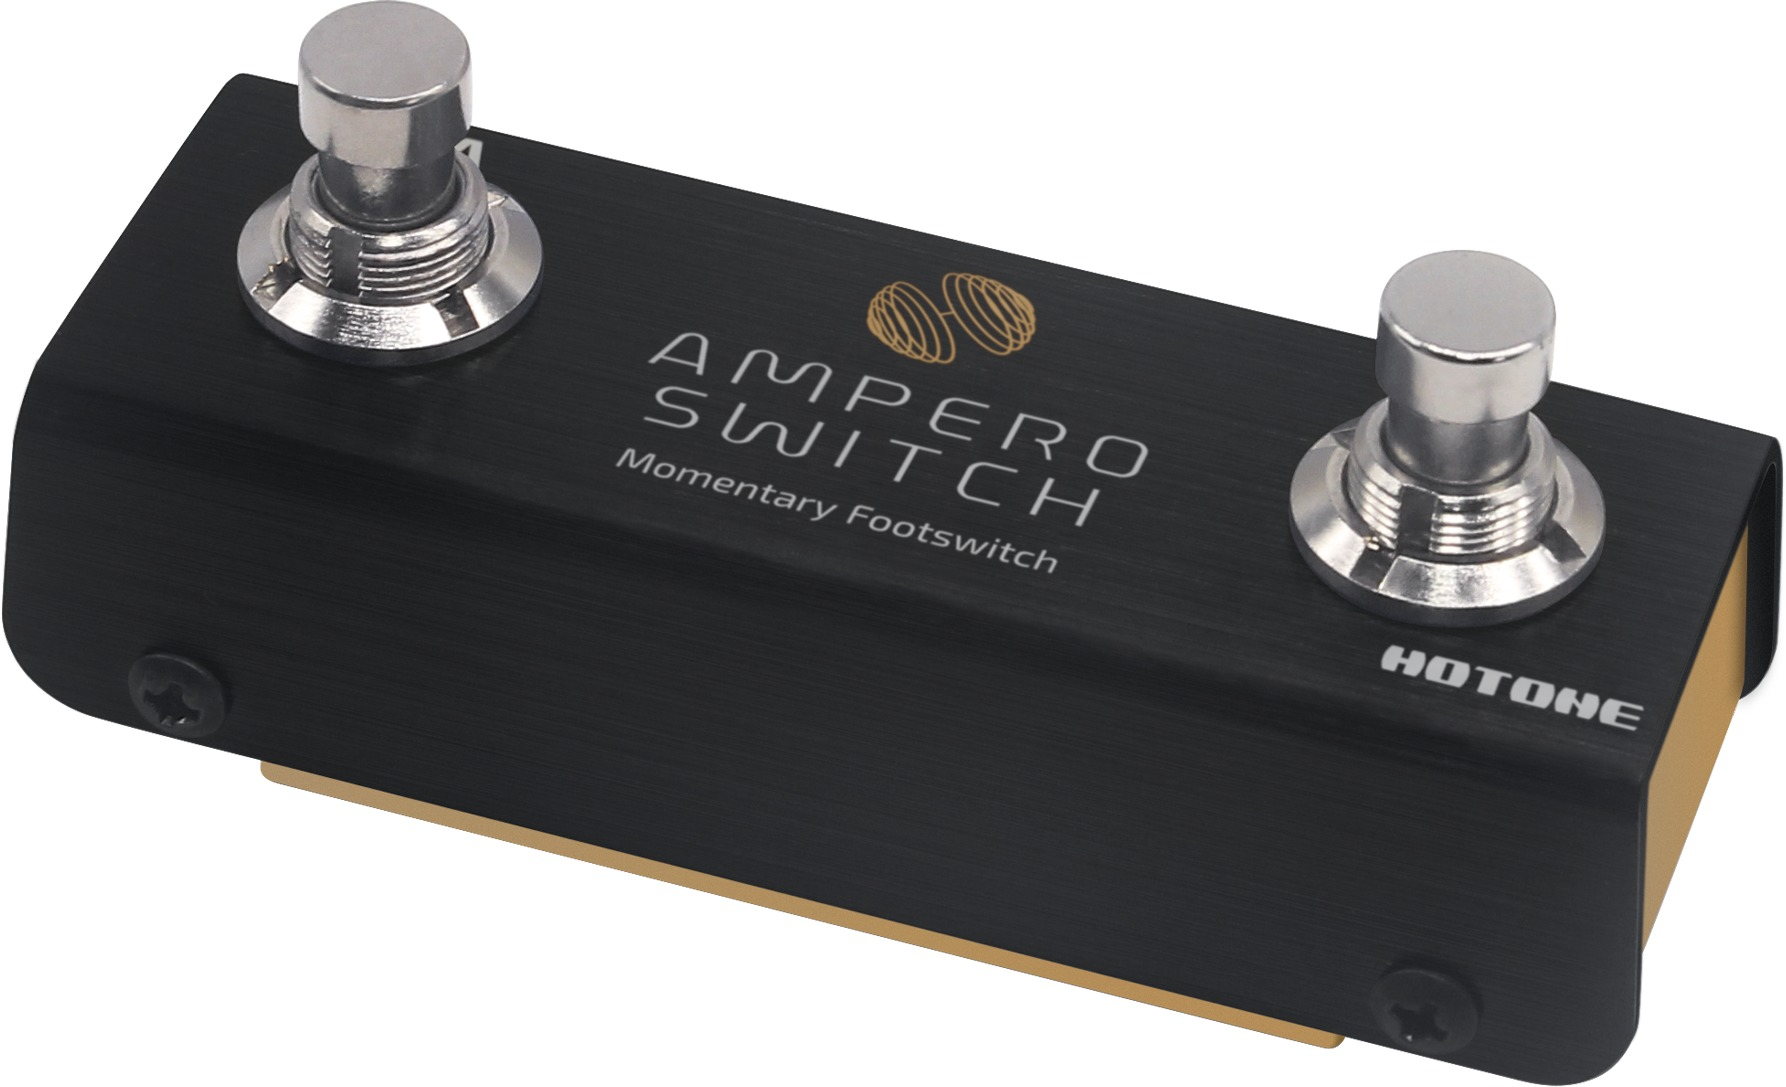 HOTONE-FS1-AMPERO-SWITCH-DUAL-FOOTSWITCH-MOMENTARY-sku-24242